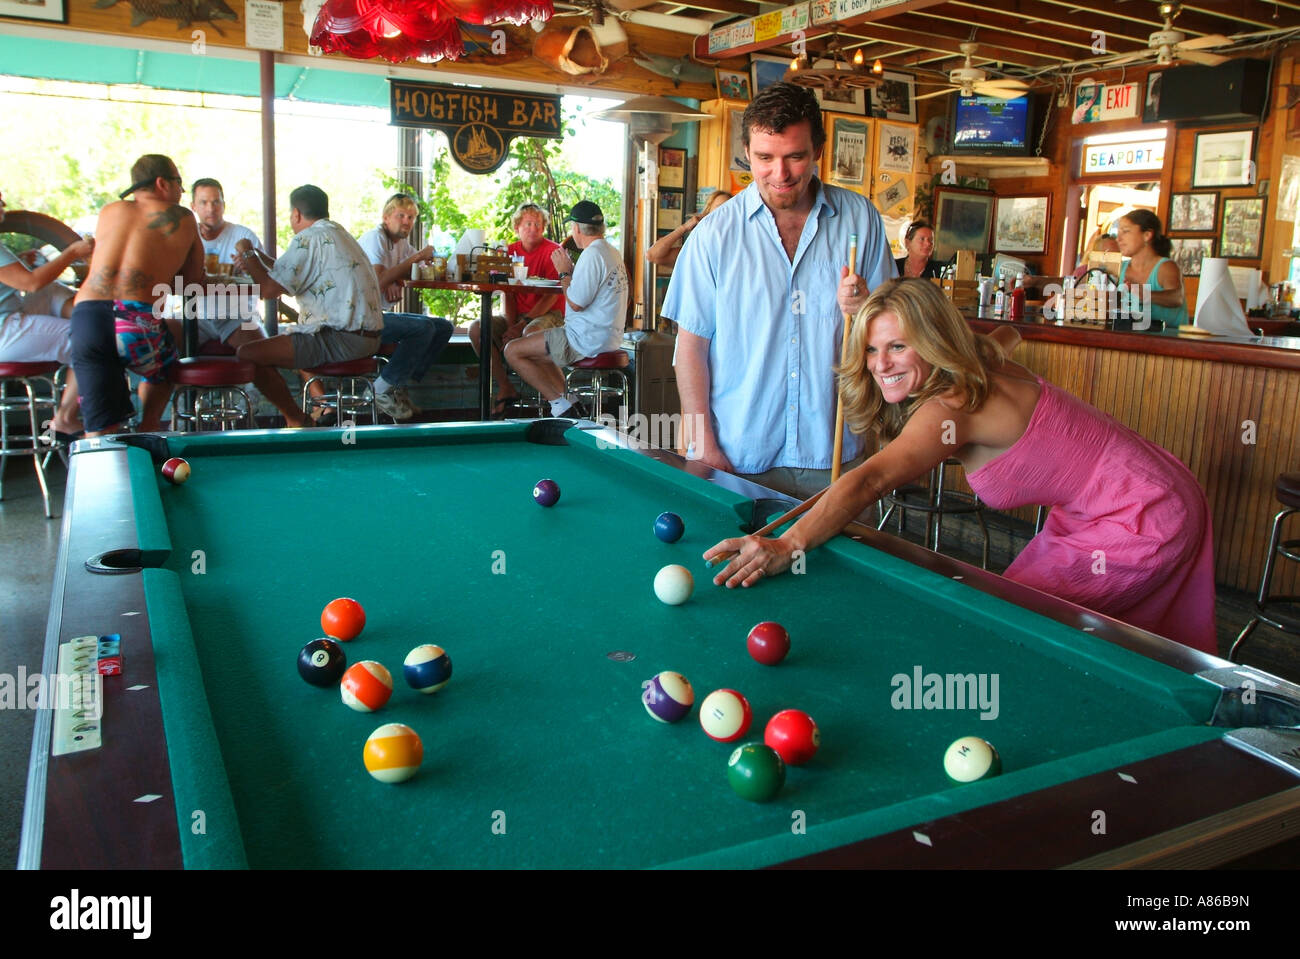 a-couple-plays-pool-at-the-hogfish-bar-a